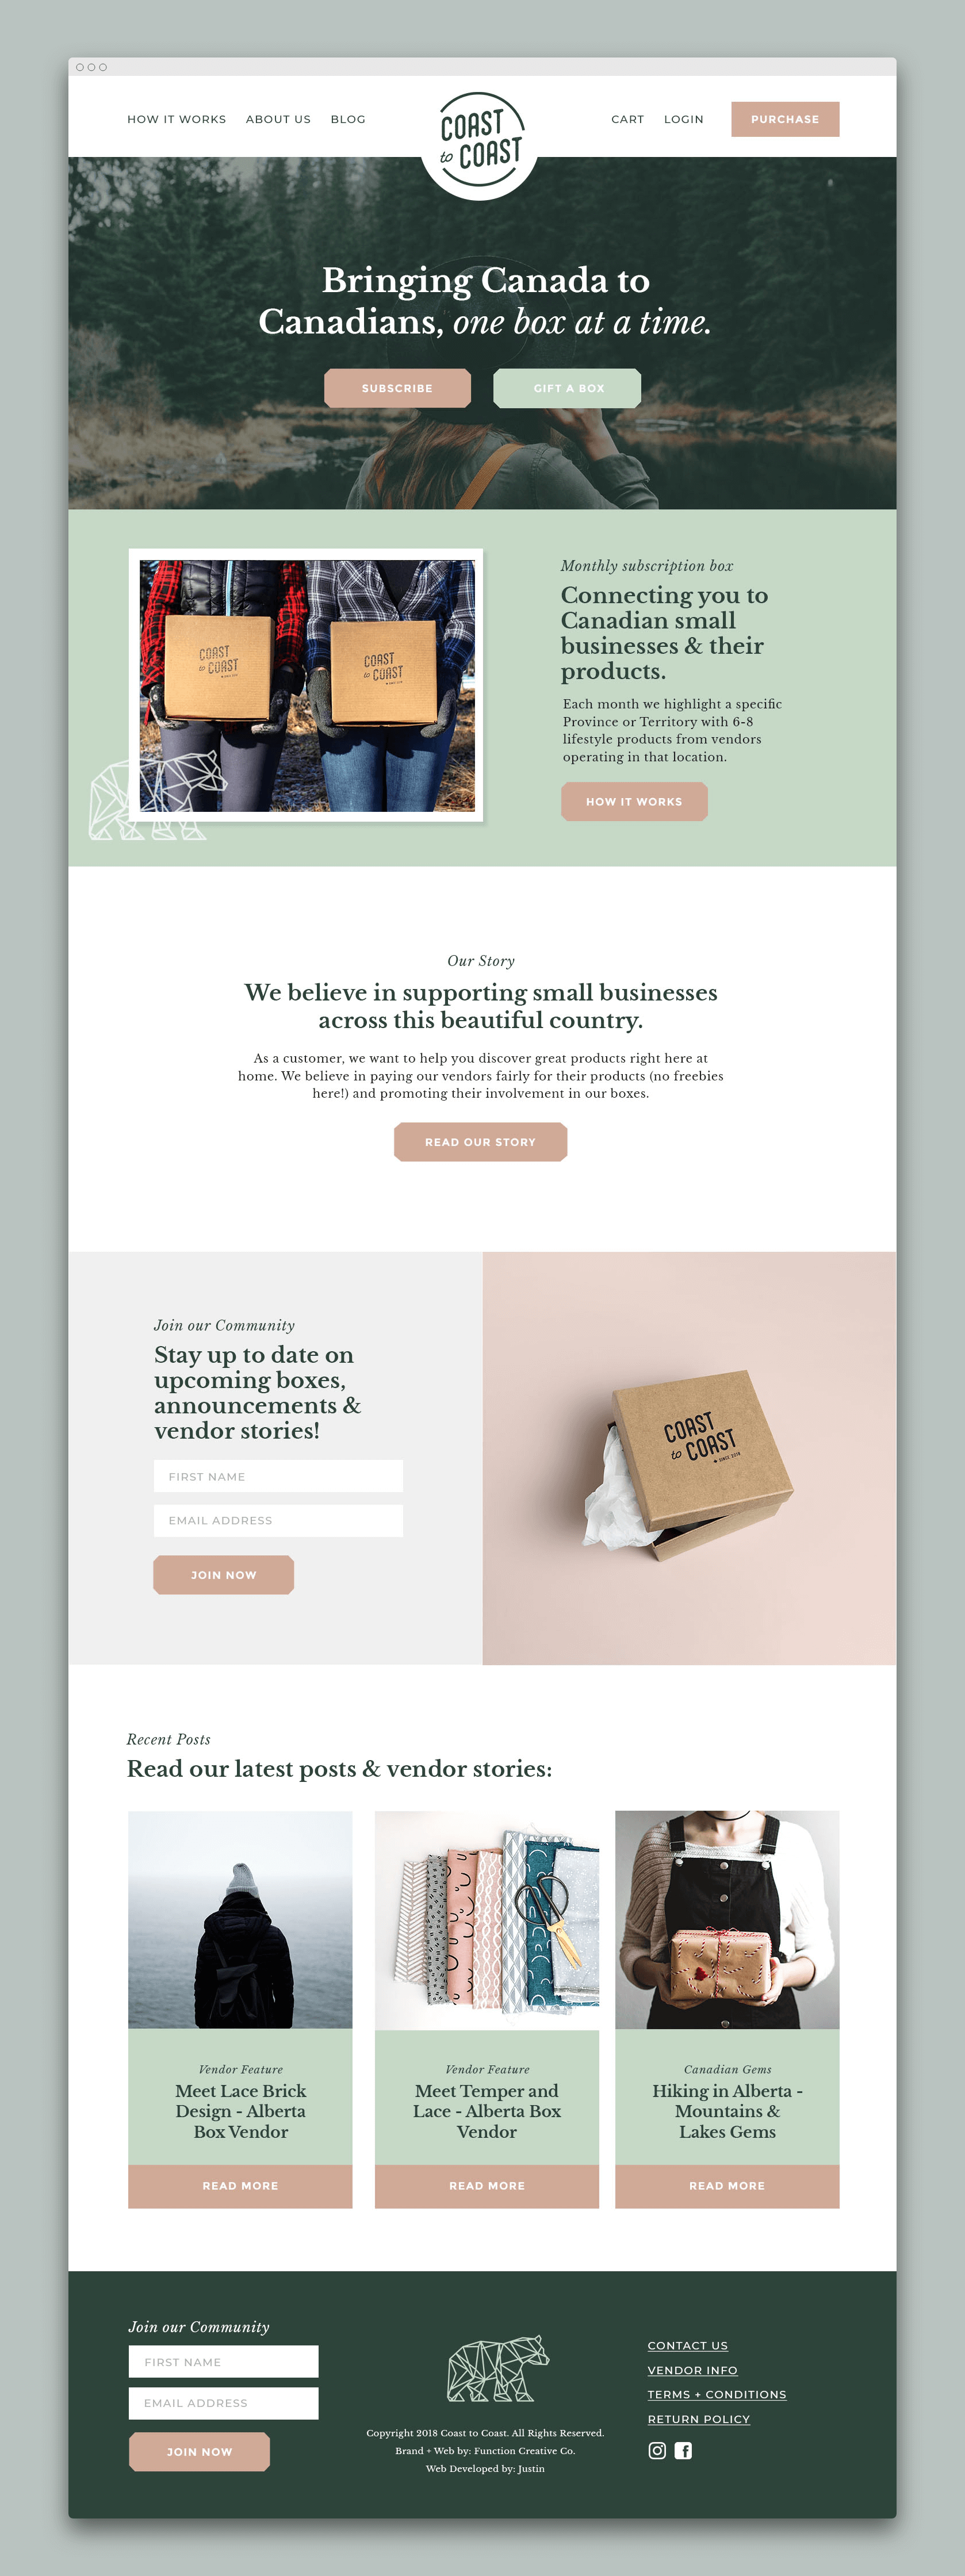 subscription box brand and packaging design website design by Function Creative Co.